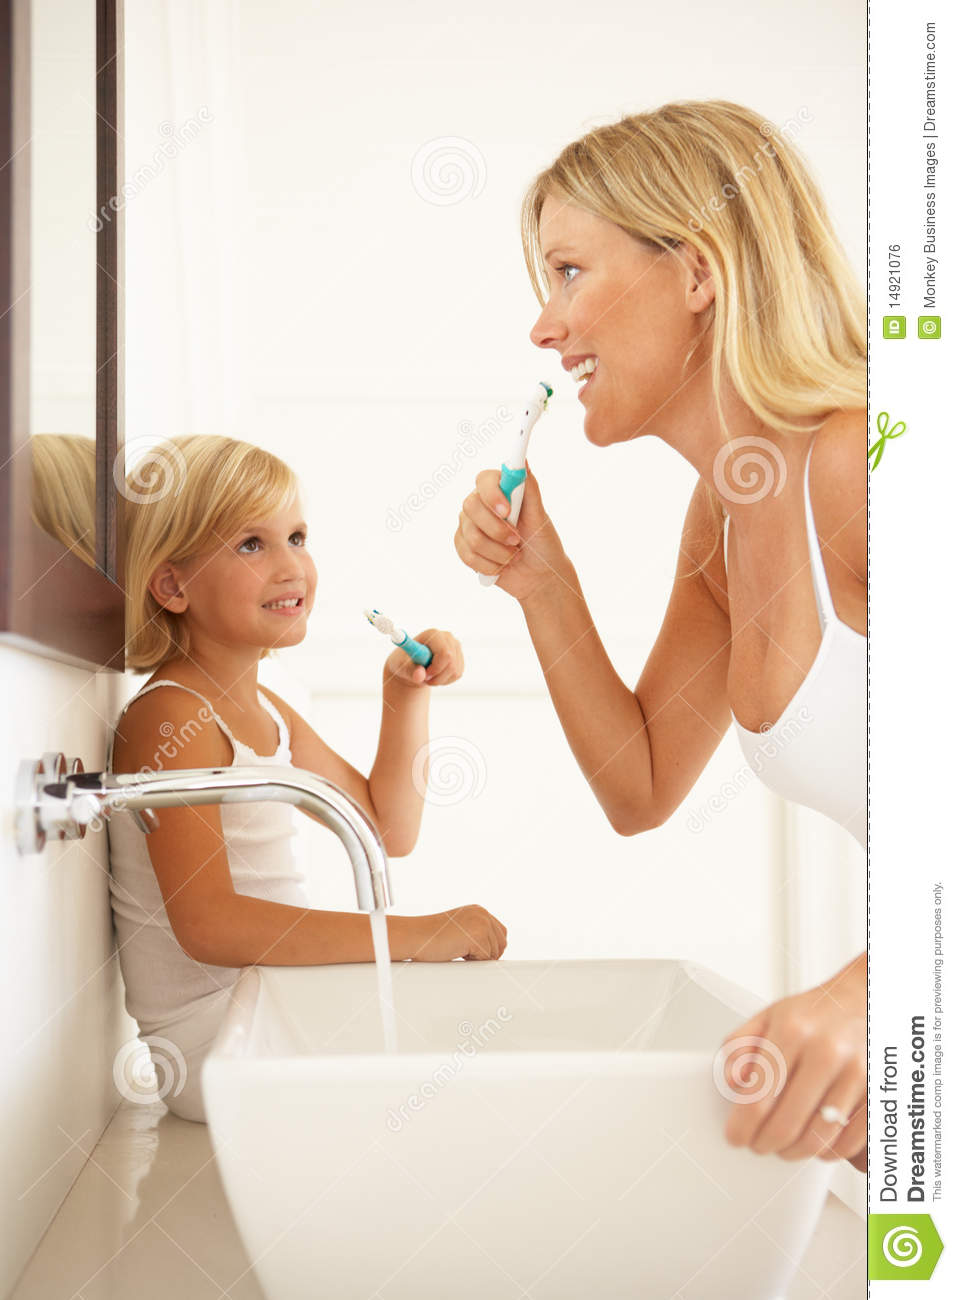 Image Result For Bathroom Sink Toothbrush Clipart